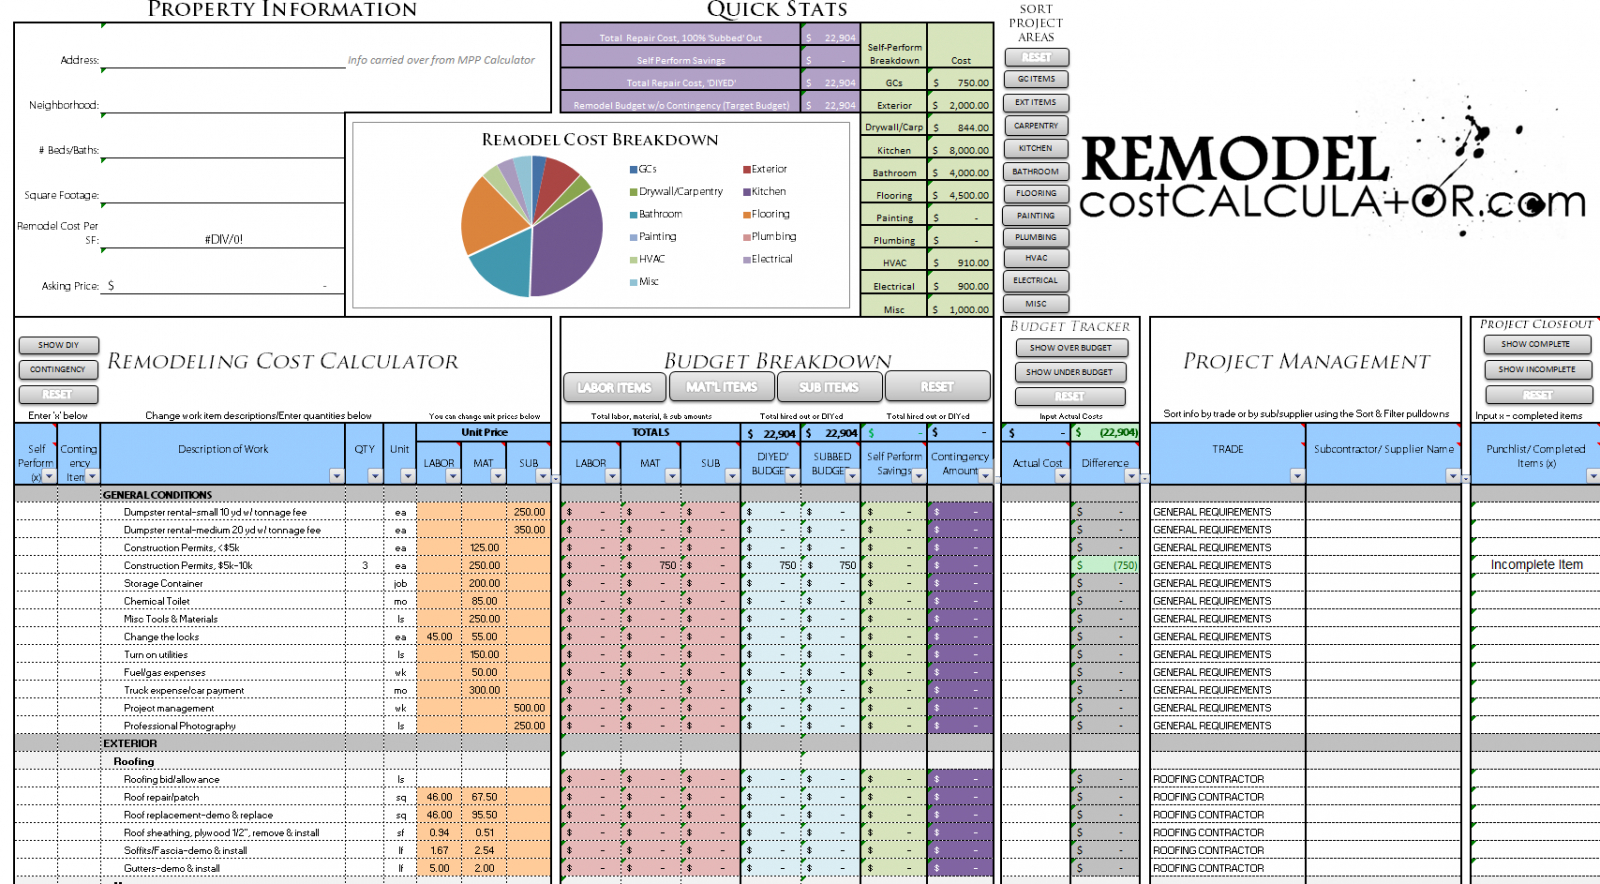 Bathroom Remodel Budget Spreadsheet Throughout Sheet Bathroom Remodel Cost Spreadsheet Budget Worksheet Checklist